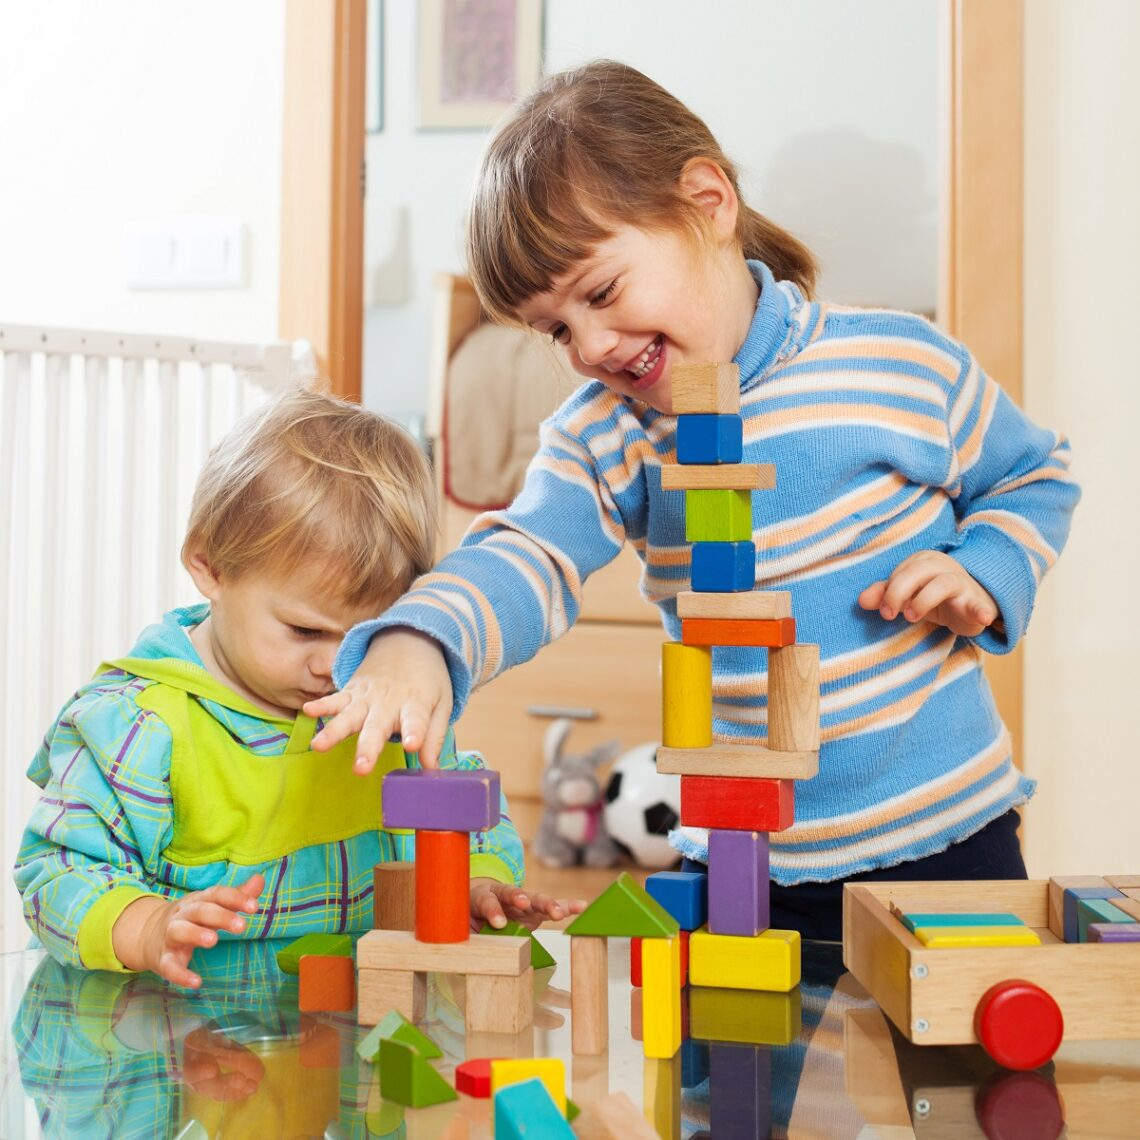 siblings together playing with  toys in home